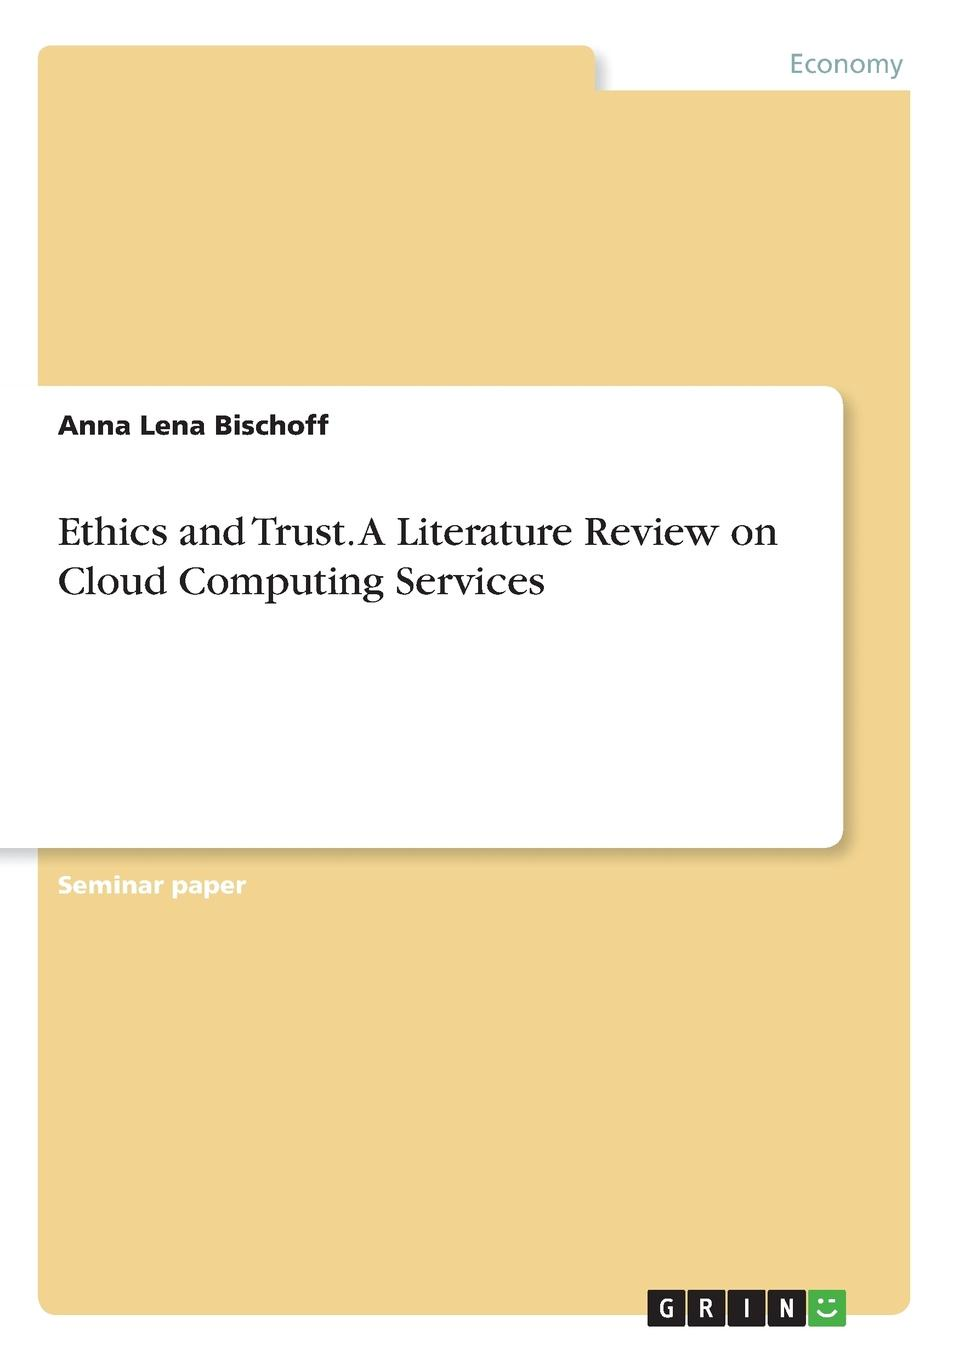 Anna Lena Bischoff Ethics and Trust. A Literature Review on Cloud Computing Services sherwyn morreale building the high trust organization strategies for supporting five key dimensions of trust